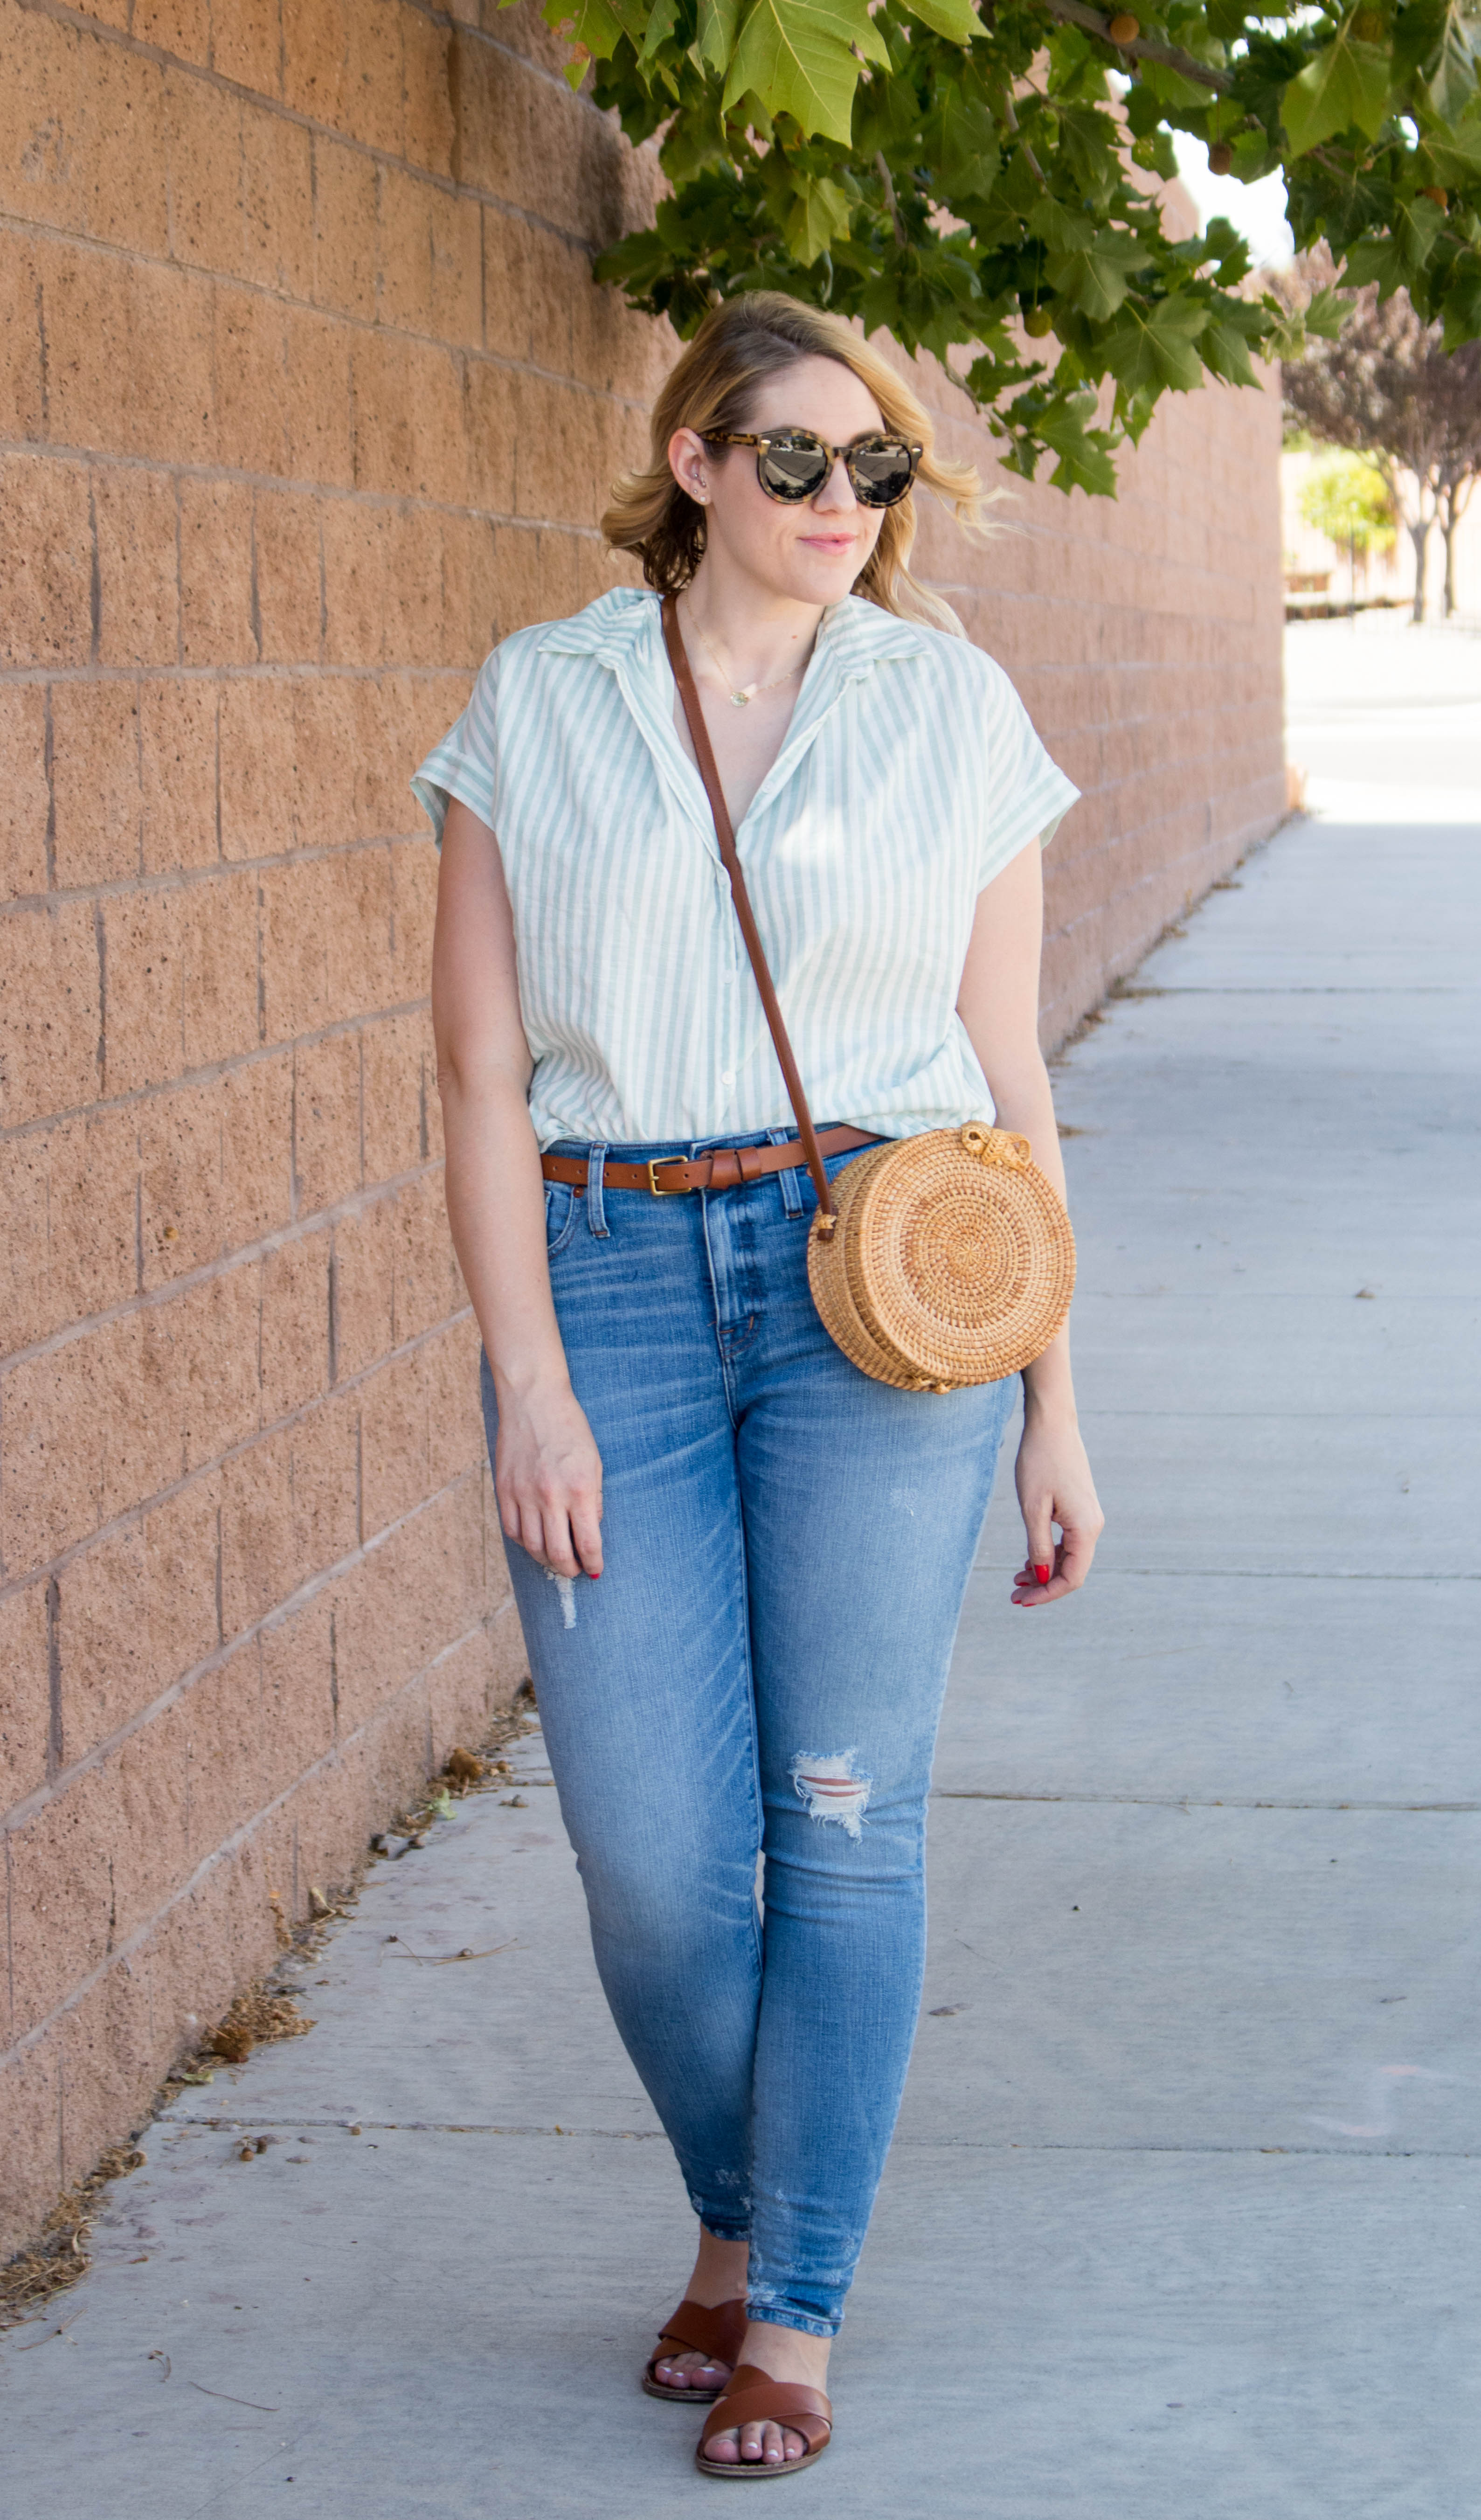 madewell summer outfit skinny jeans #madewell #skinnyjeans #jeansoutfit #summerstyle